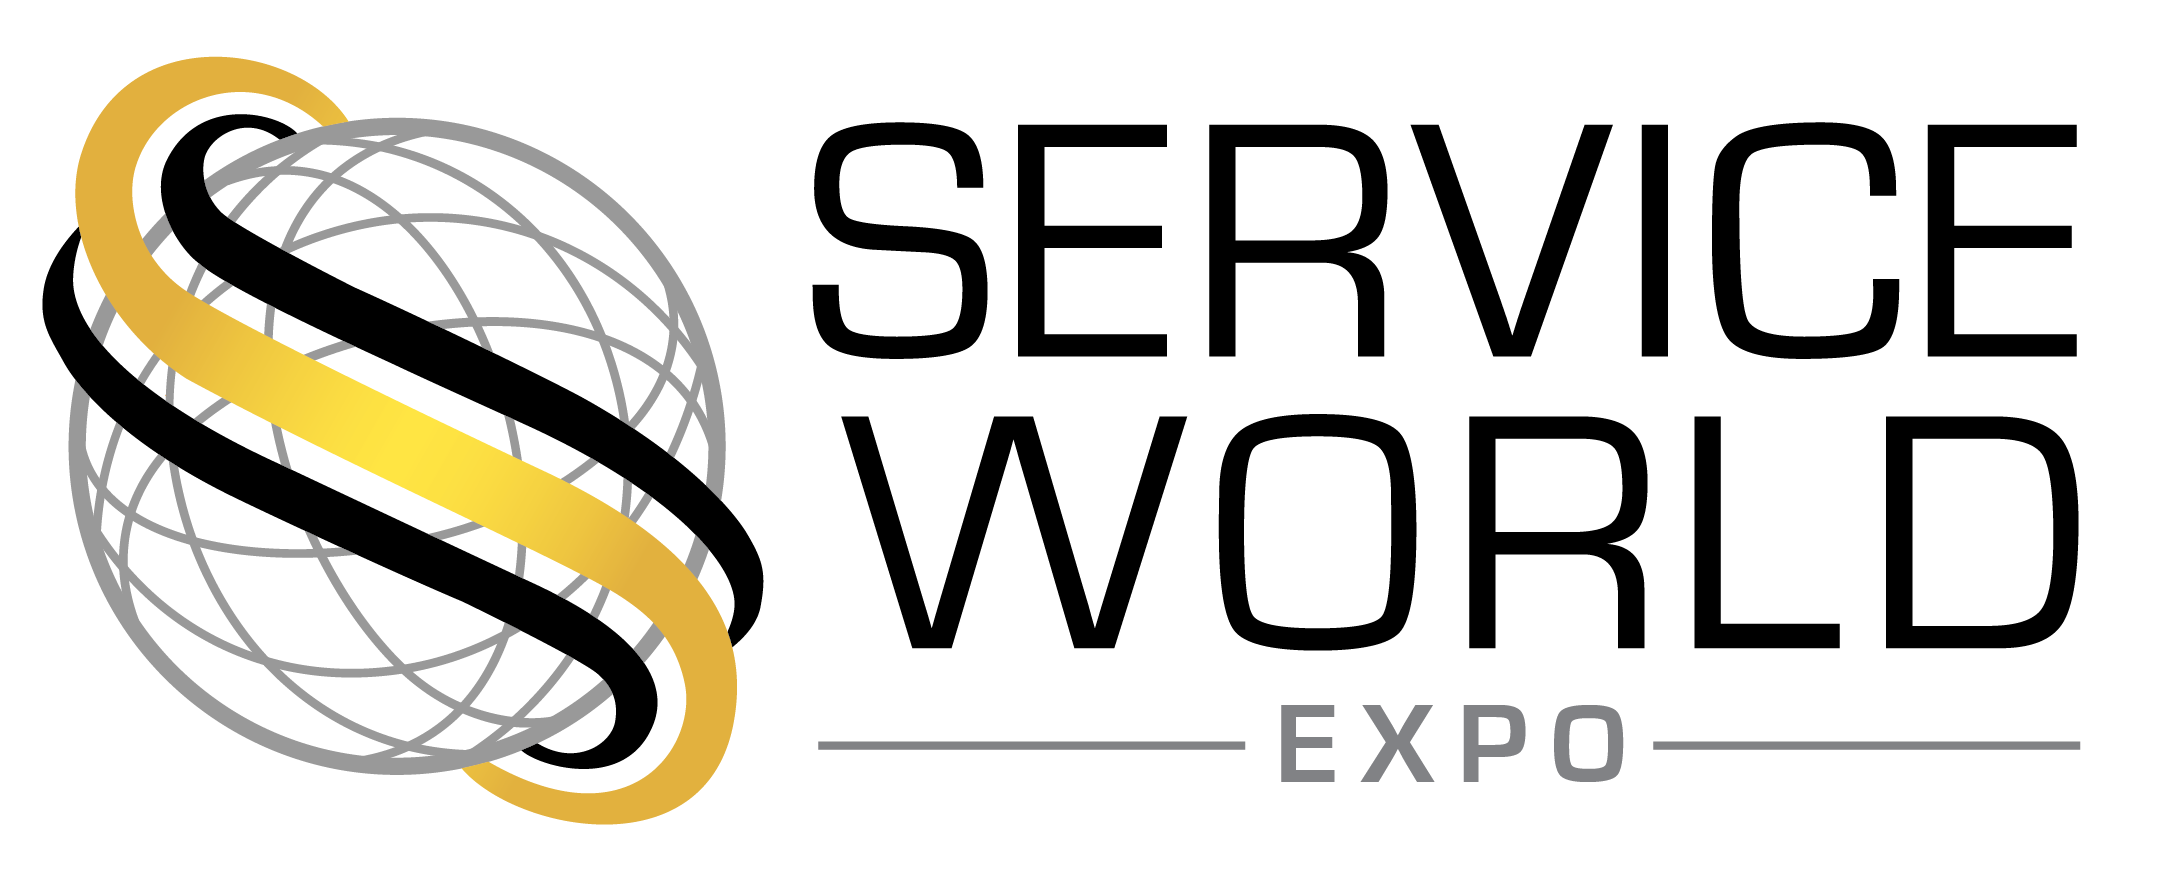 Service World Trade Show and Conference 2020 logo